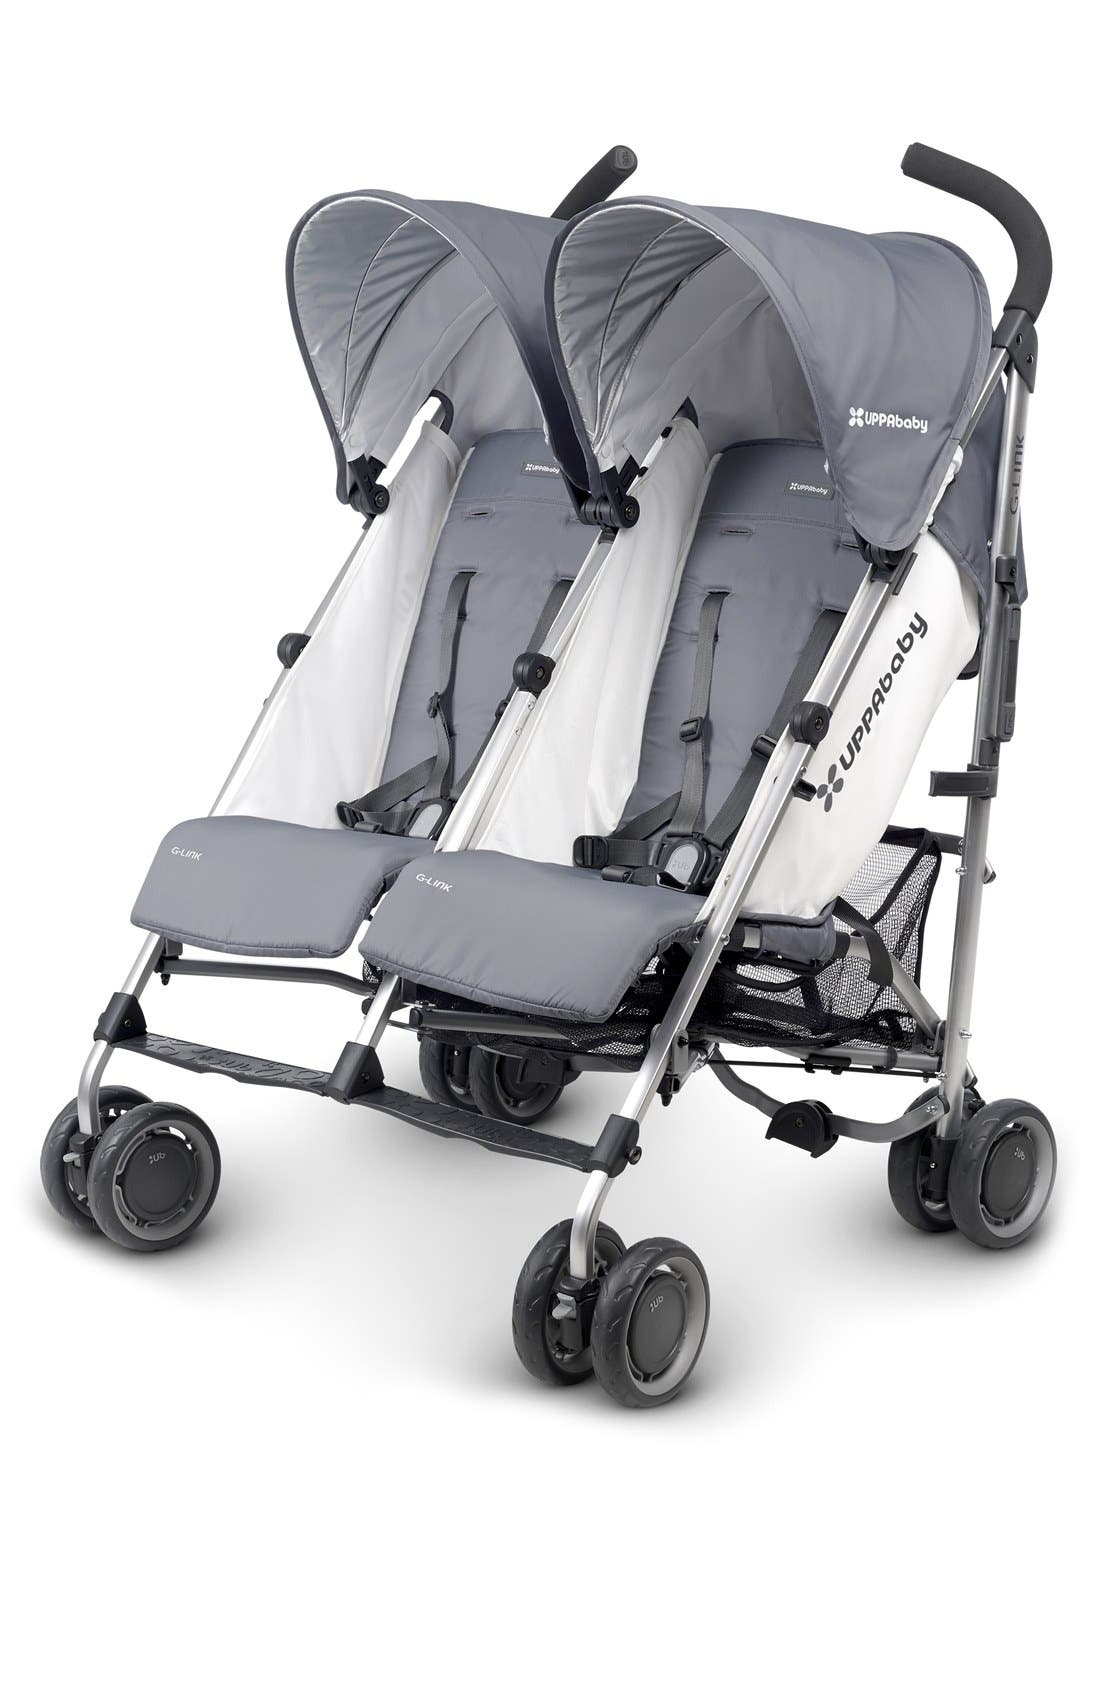 G-LINK Pascal Aluminum Frame Reclining Side by Side Umbrella Stroller,                         Main,                         color, 020